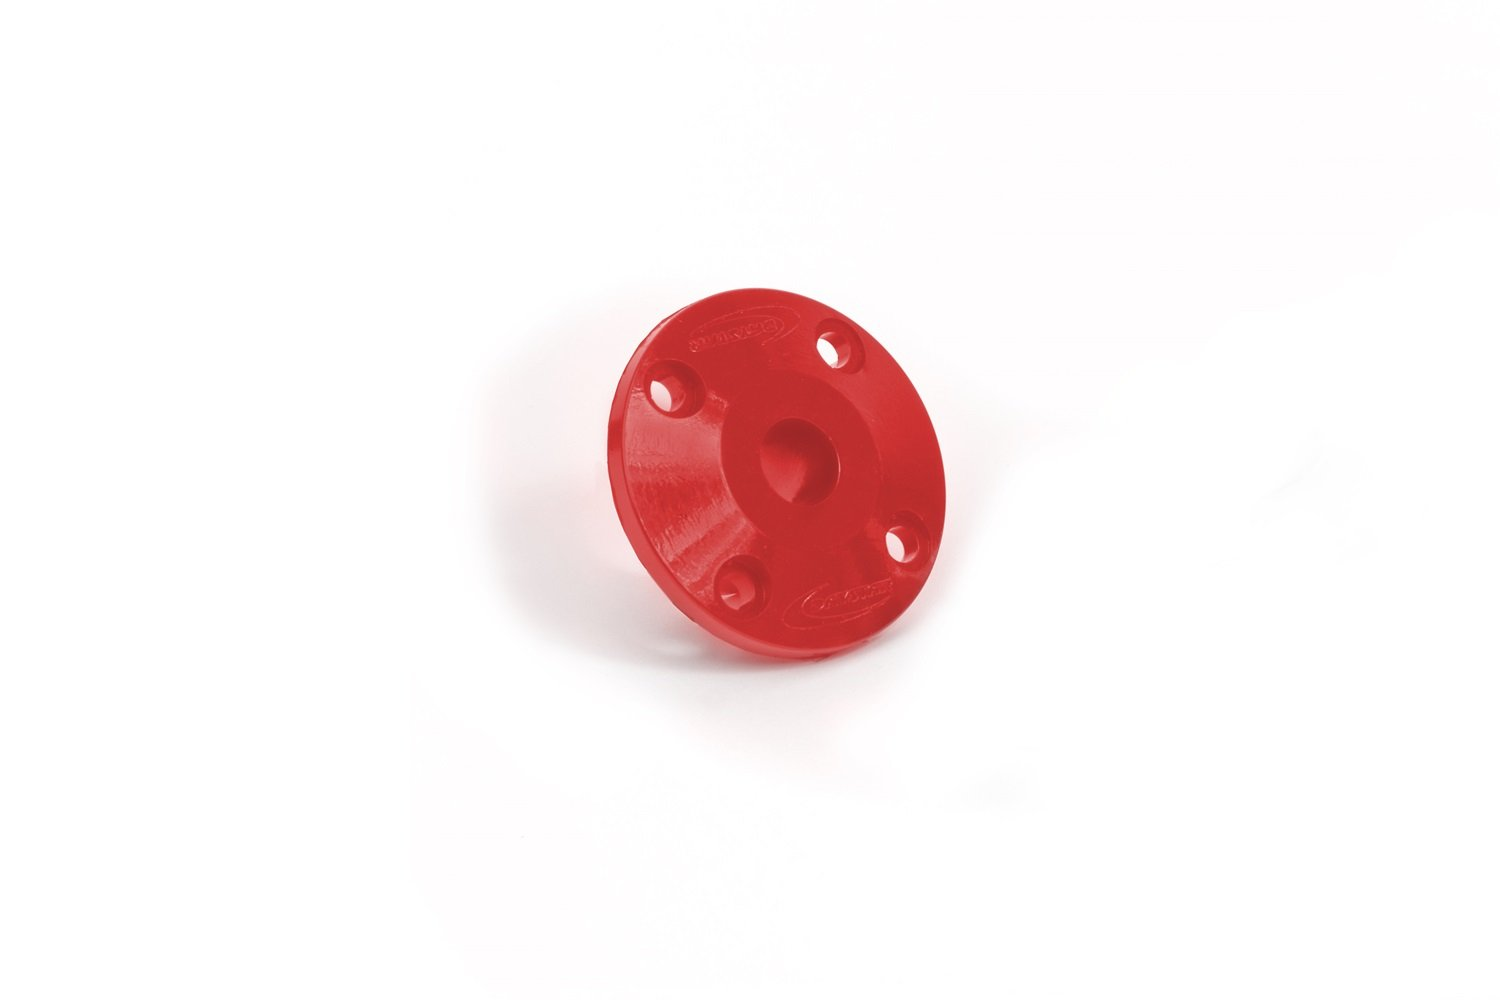 Daystar, Universal Hood Pin Grommet, Red, Single, fits all makes and models 2/4WD, KU71105RE, Made in America